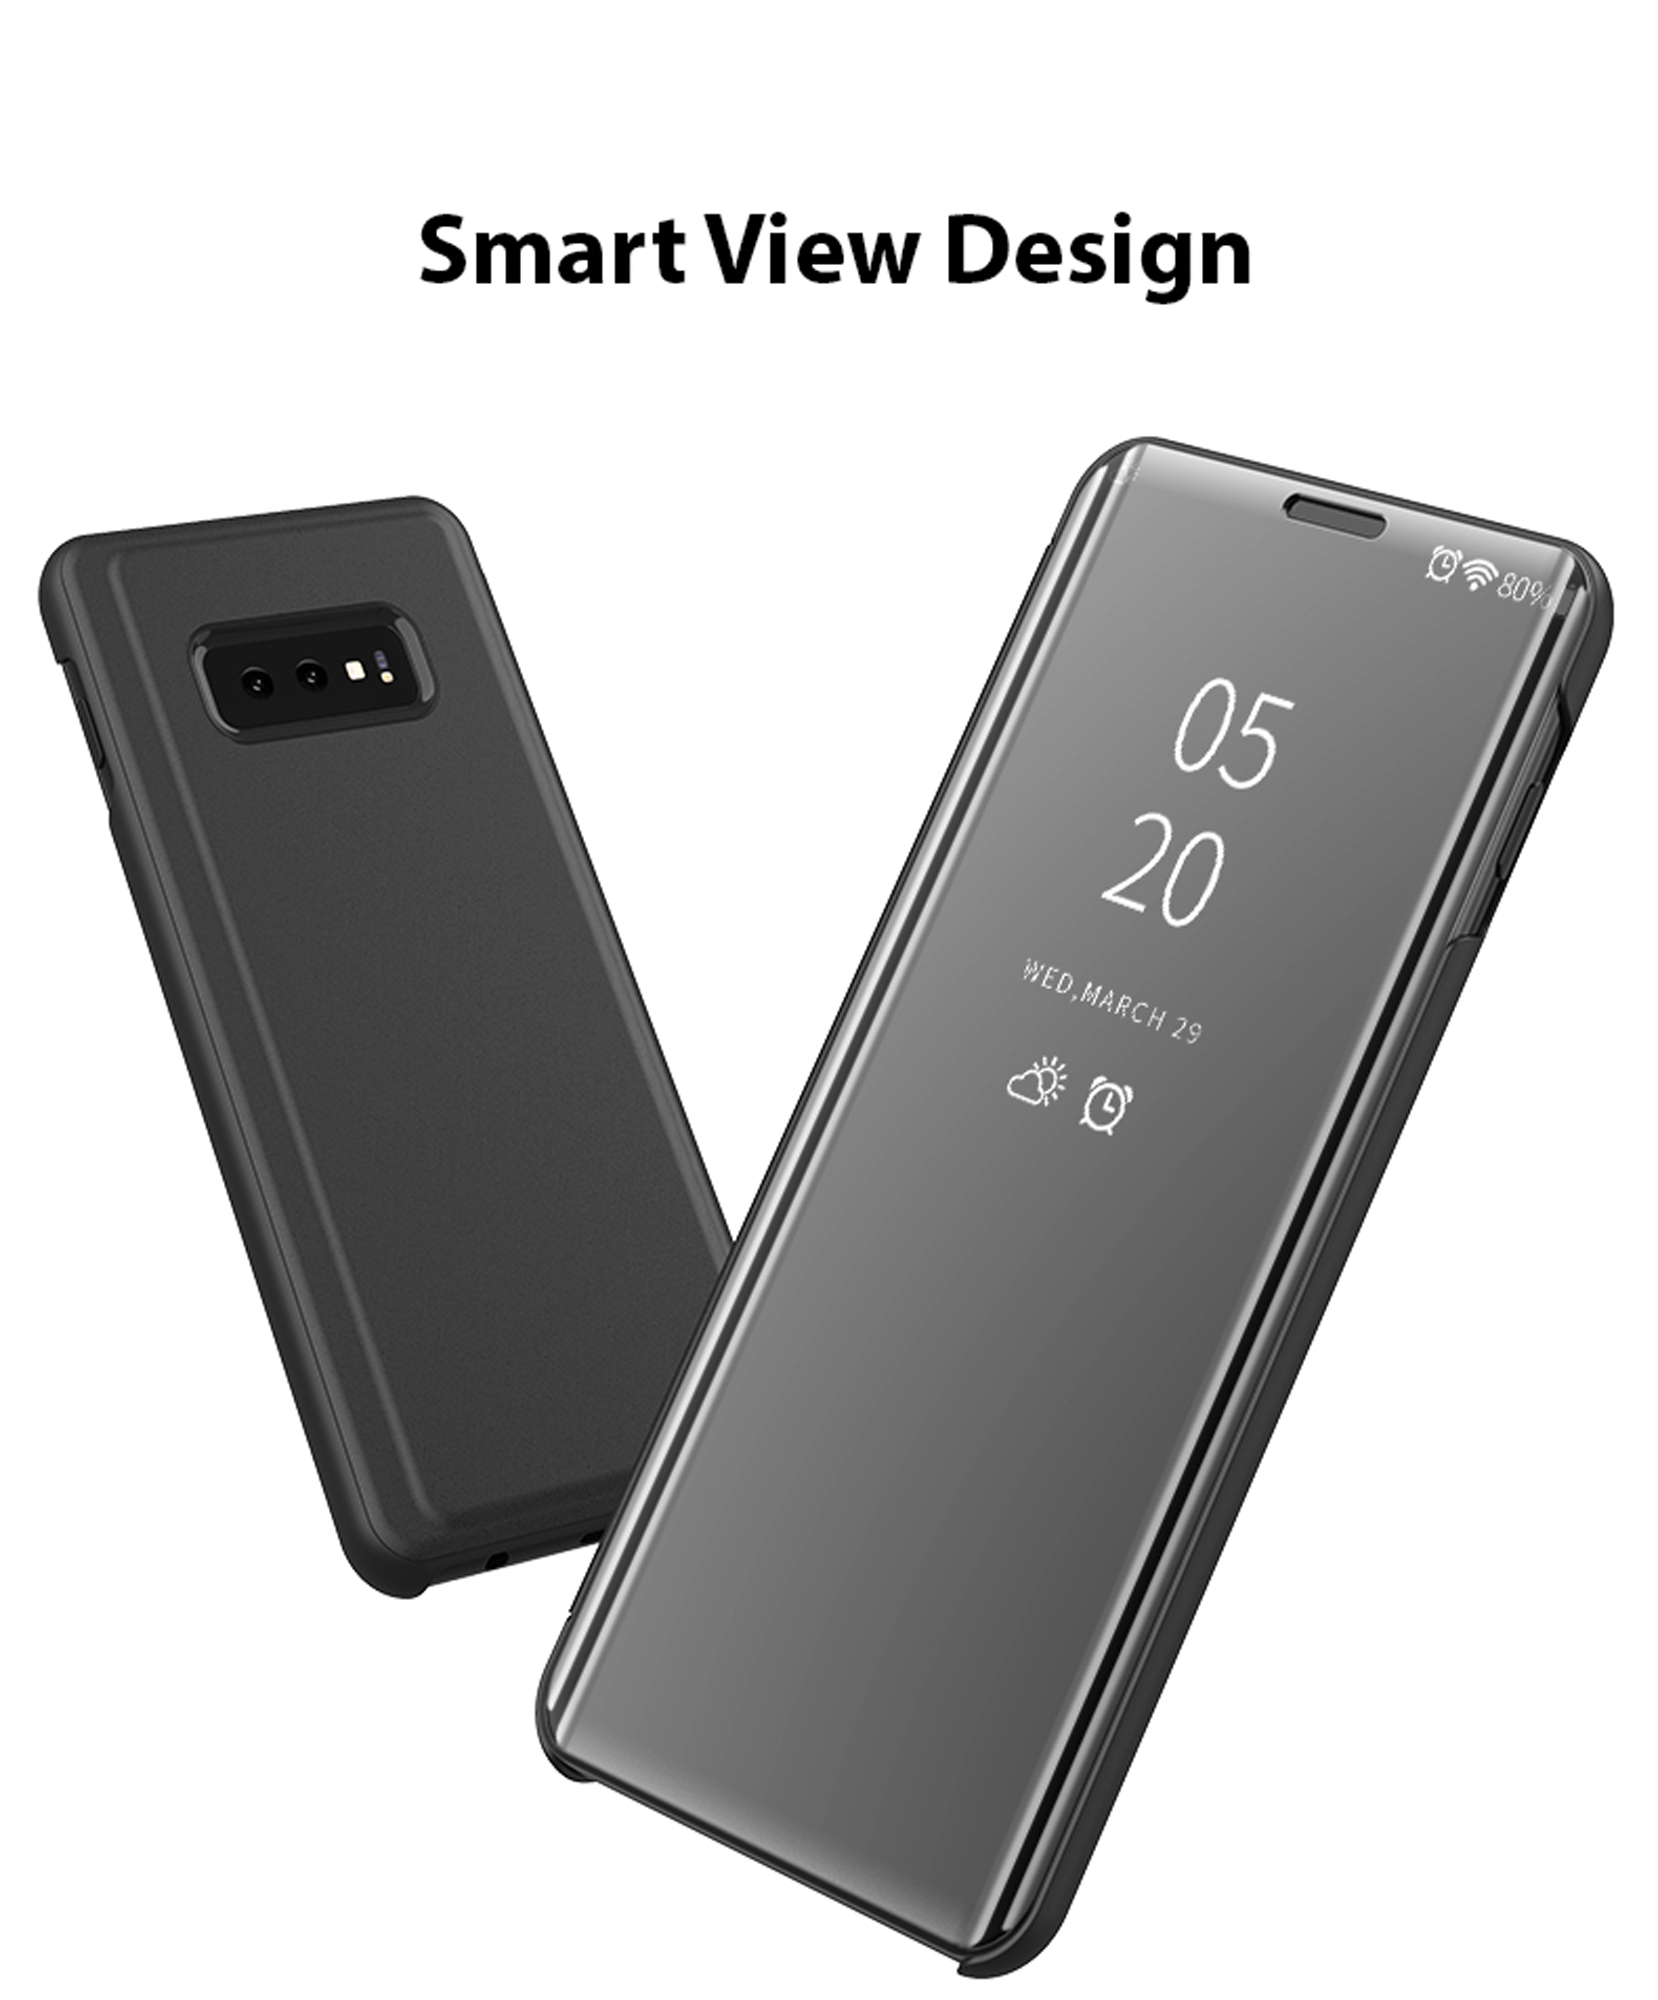 New-Samsung-Galaxy-S9-S10-Plus-Smart-View-Mirror-Leather-Flip-Stand-Case-Cover thumbnail 38